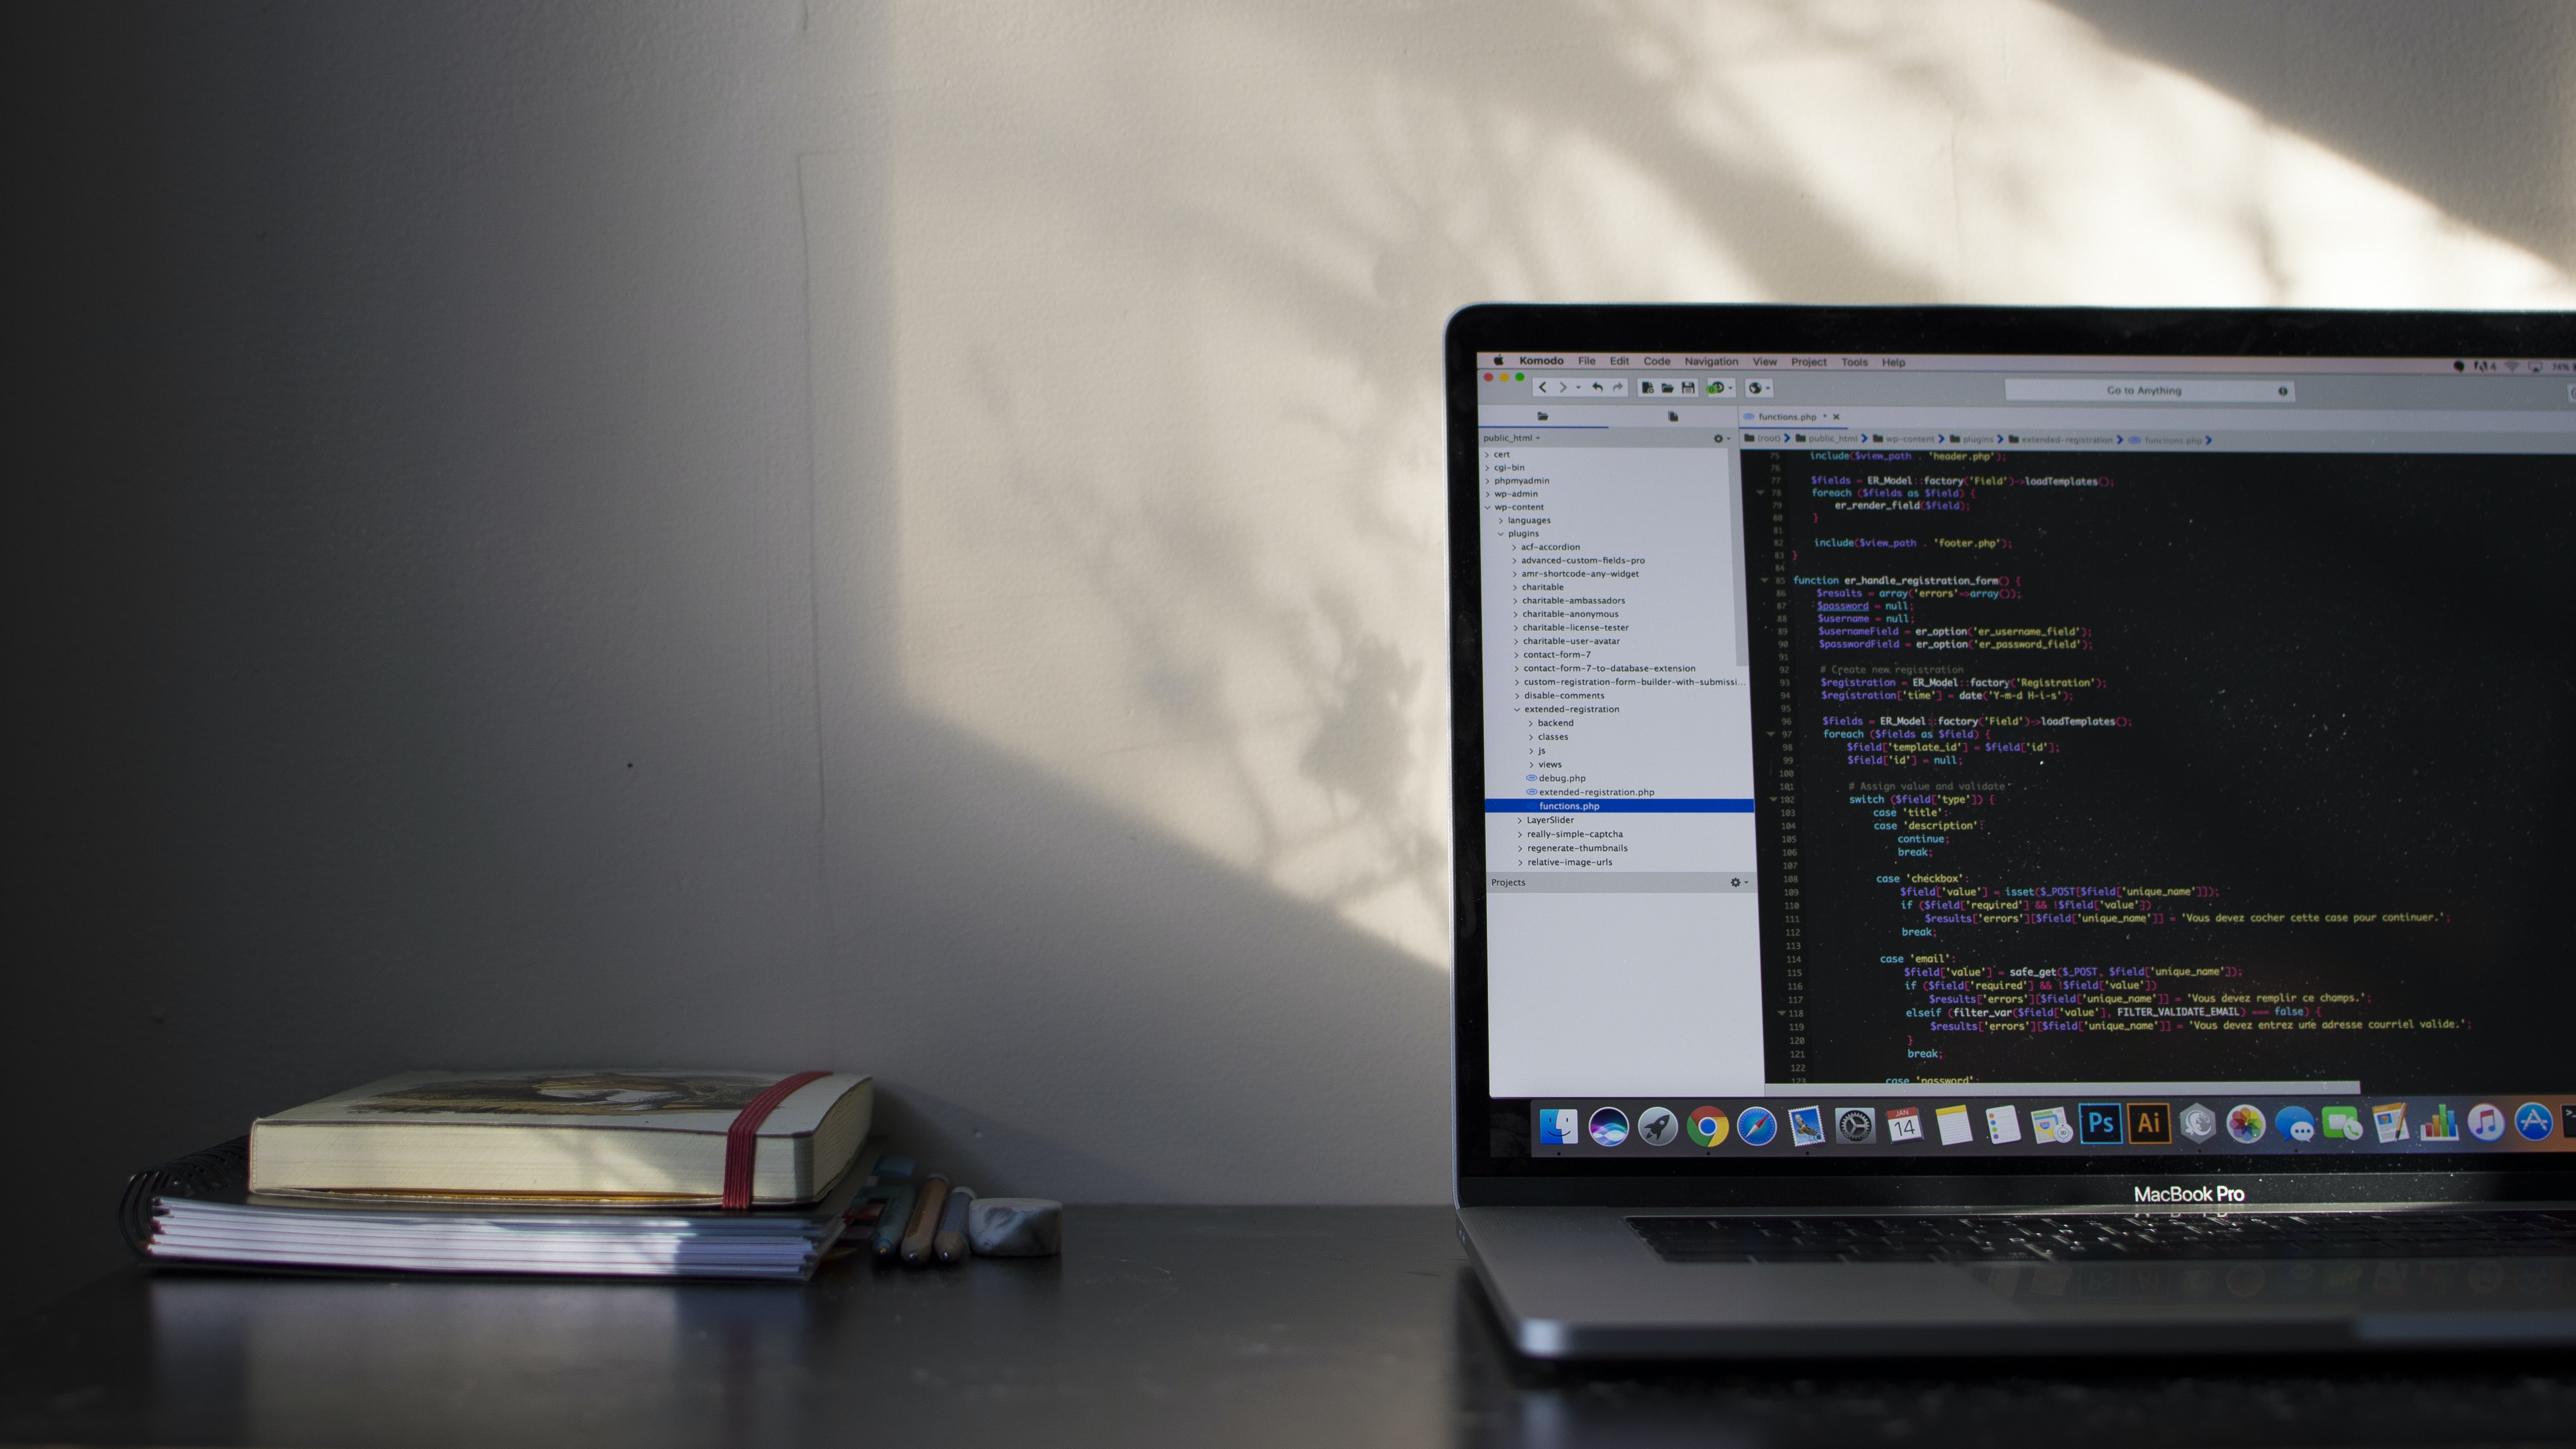 Two books on a desk near a MacBook with lines of code on its screen